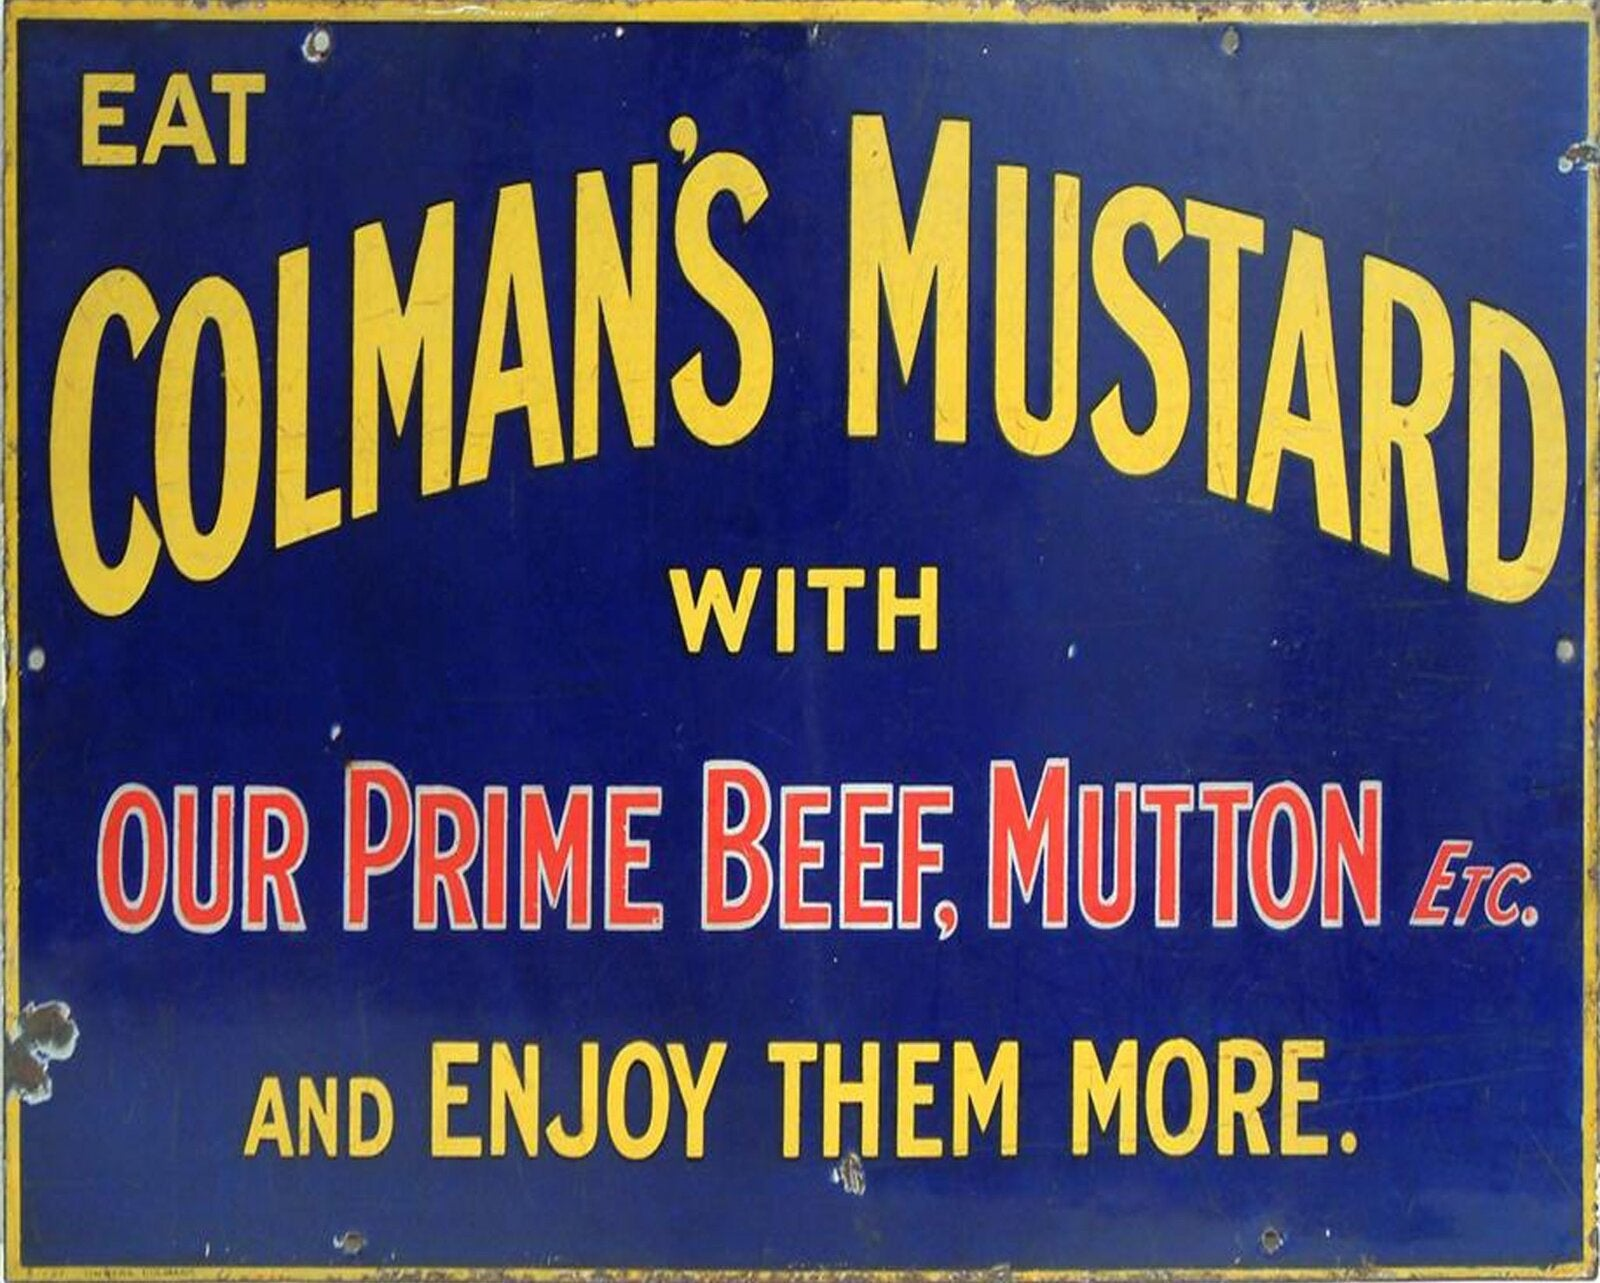 Vintage Metal Sign - Retro Advertising - Colmans Mustard, Signage by Low Cost Gifts